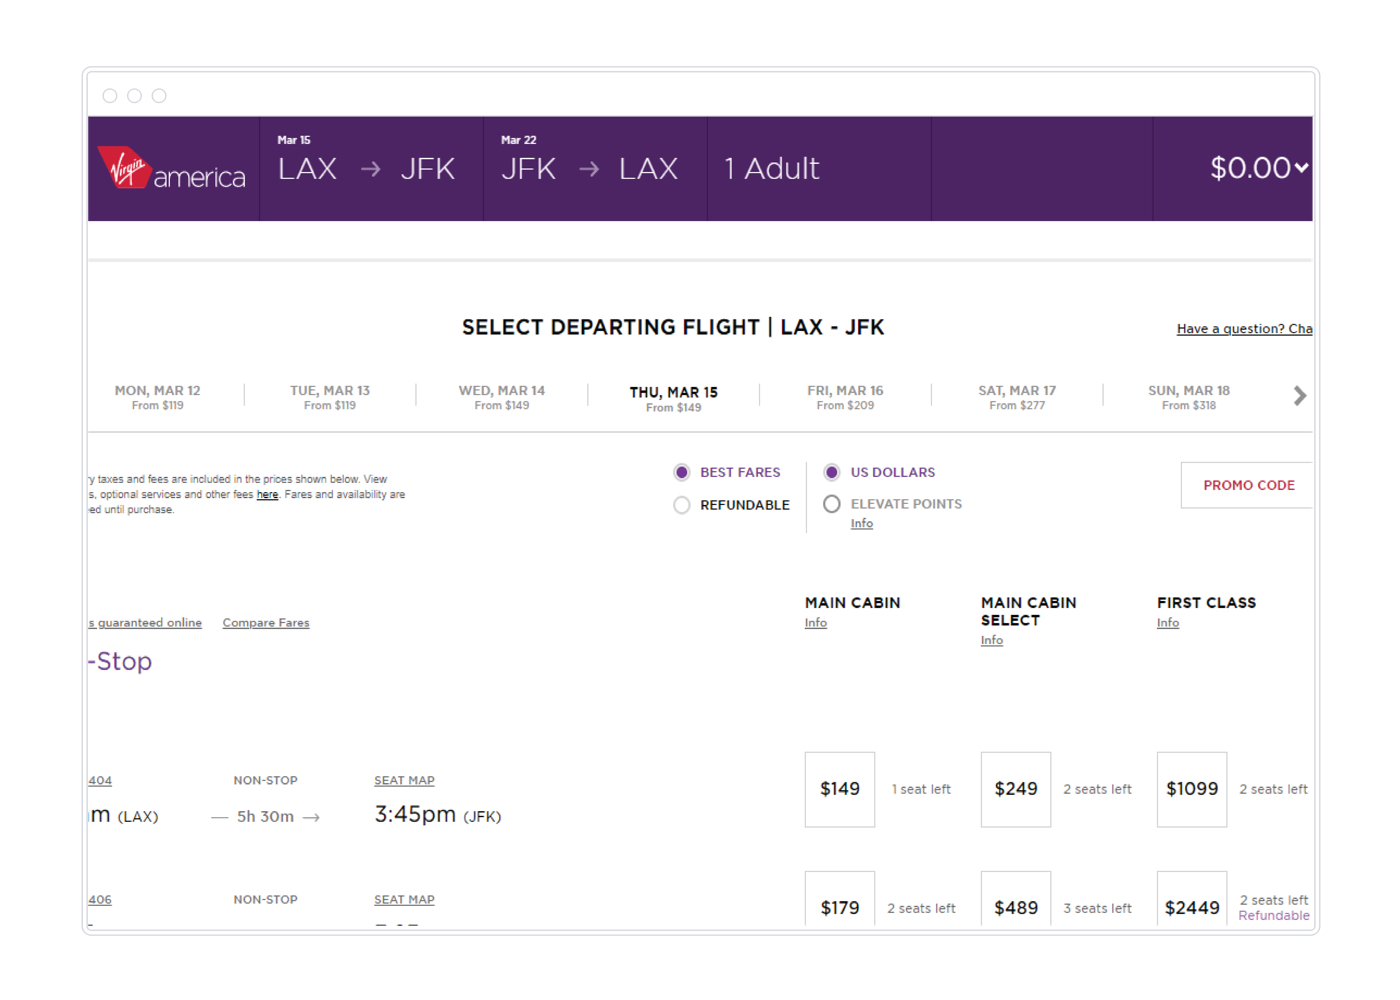 Example Virgin America flight options.